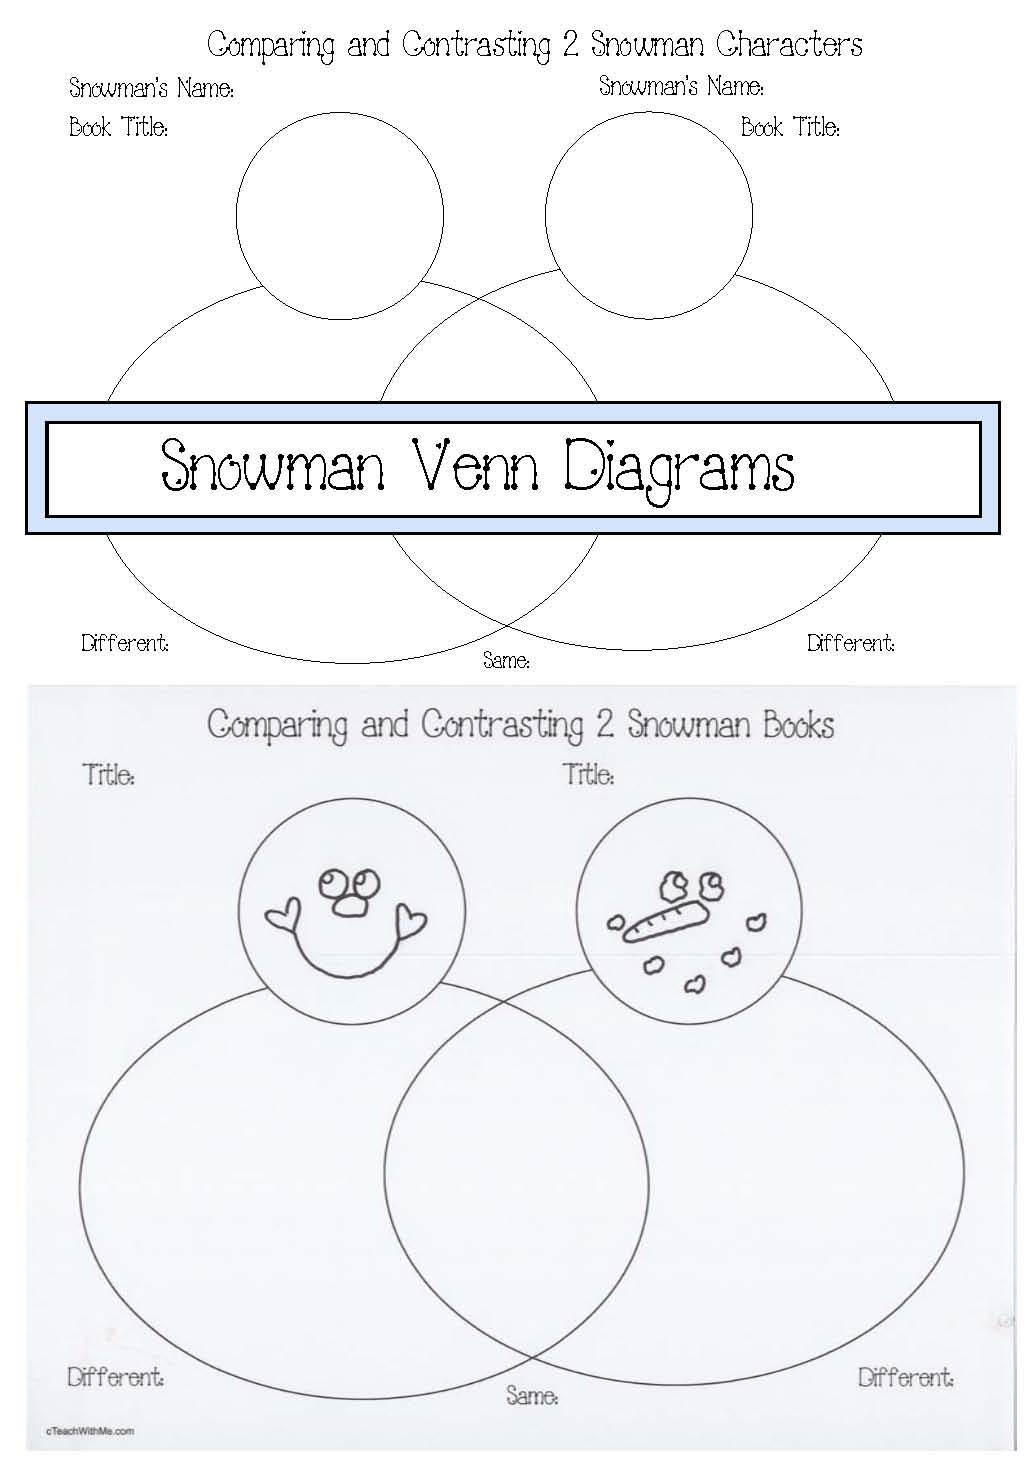 snowman activities, snowman venn diagrams, comparison and contrast activities, venn diagram activities, color activities, days of the week activities, graphing activities, end punctuation activities, punctuation activities, capitalization, color word activities, days of the week word activities